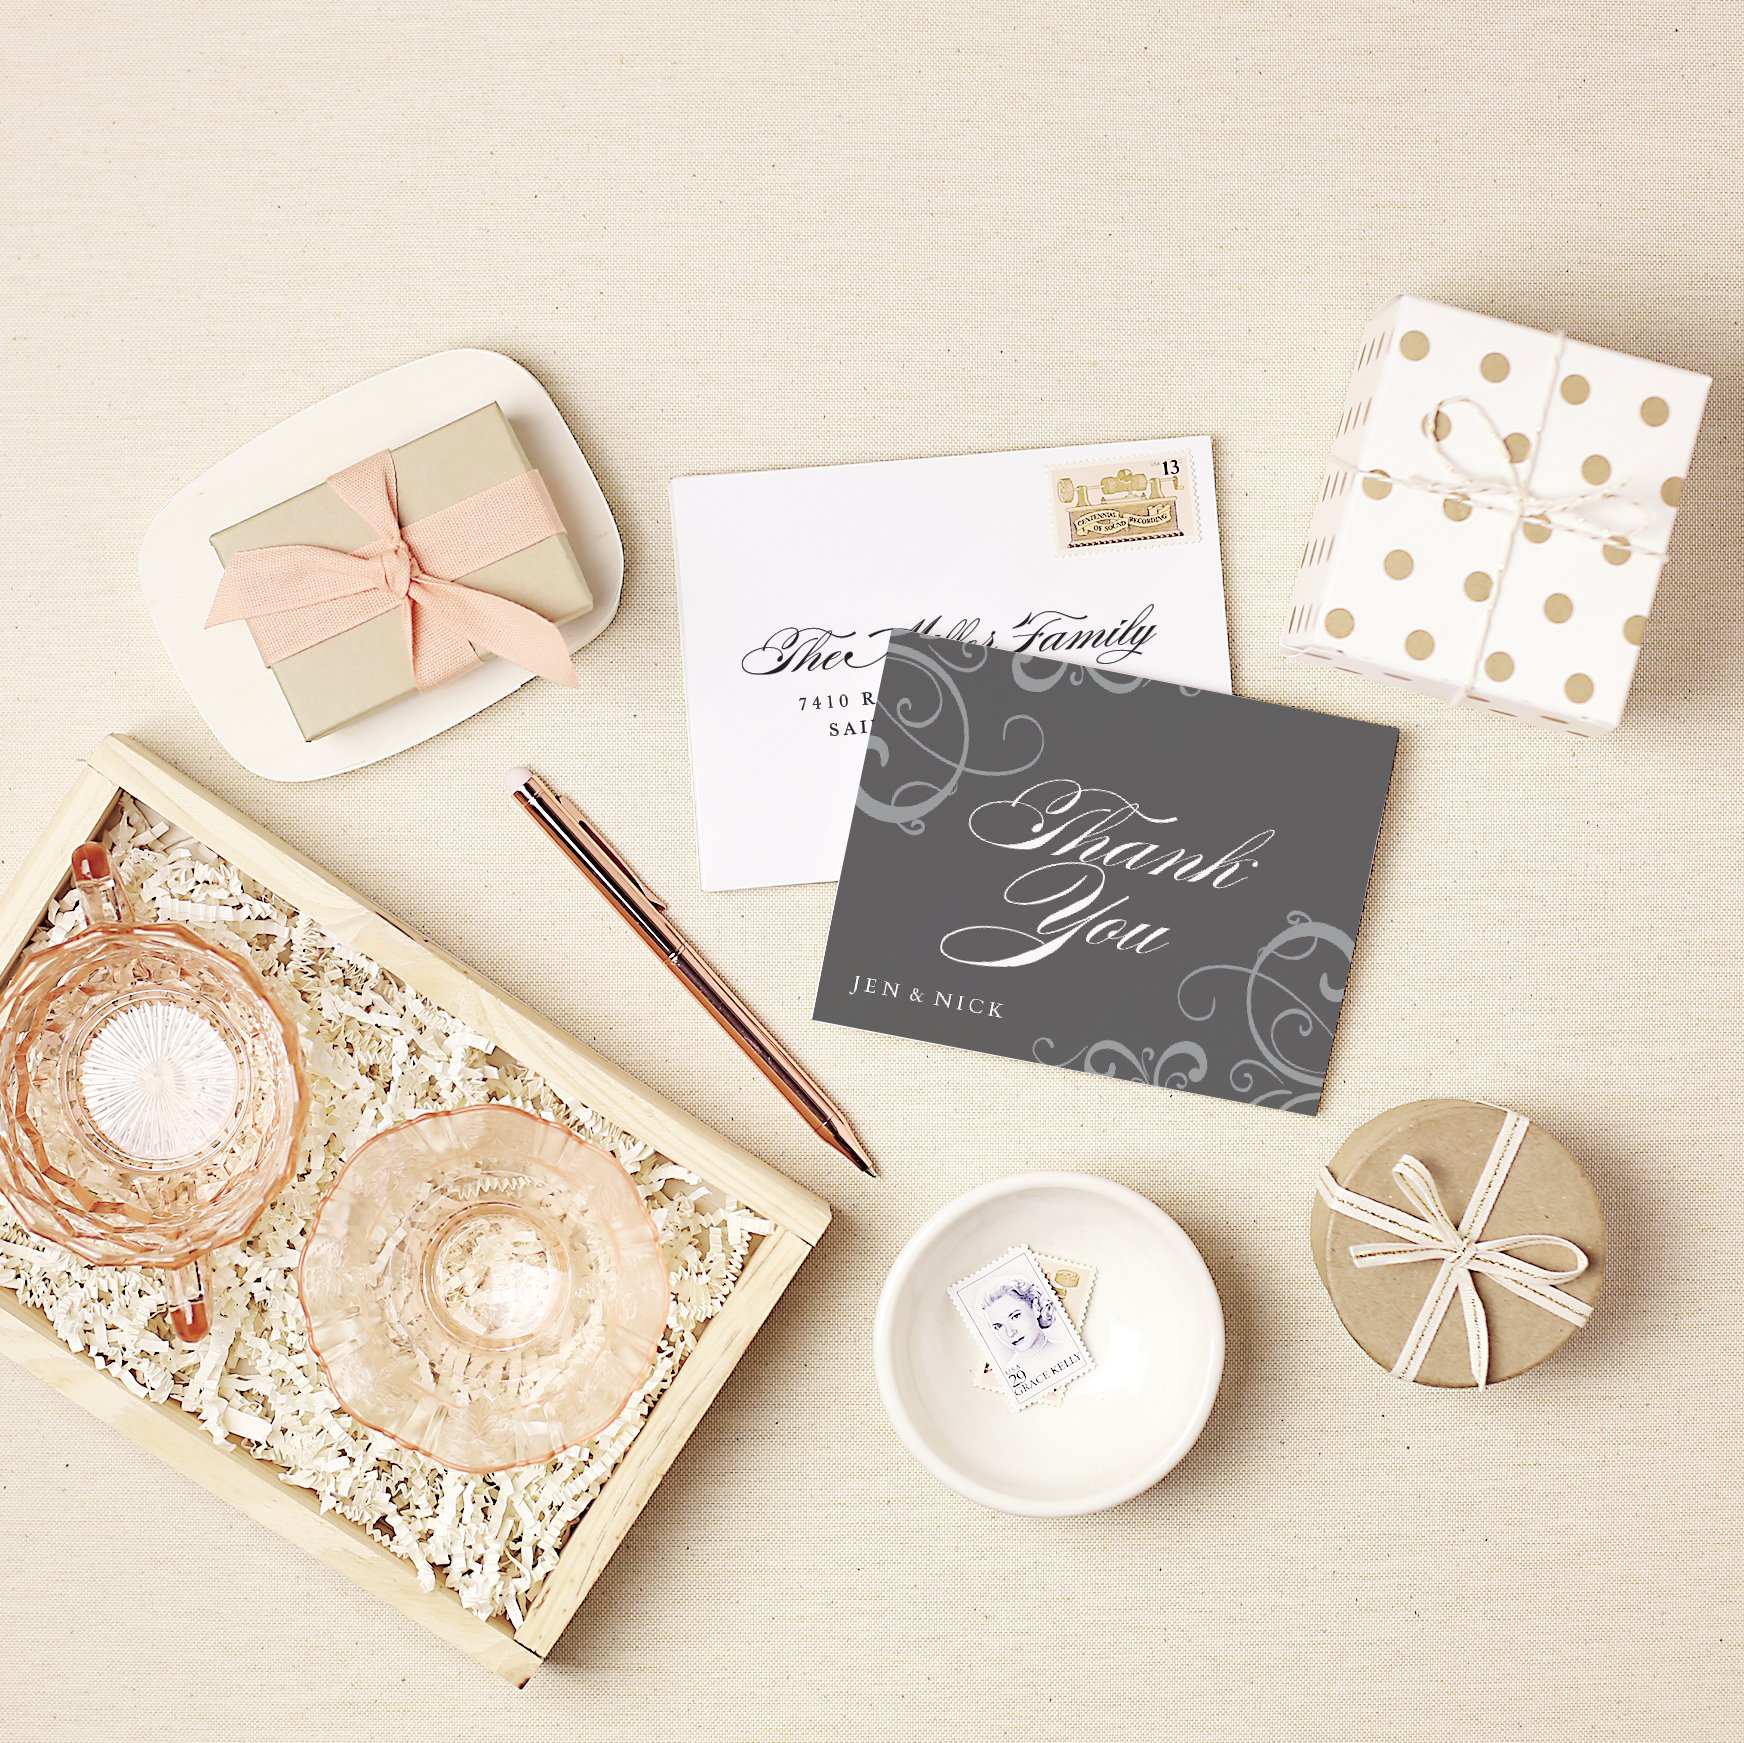 Affordable Custom Postcards: When to Say Thank You with Cards